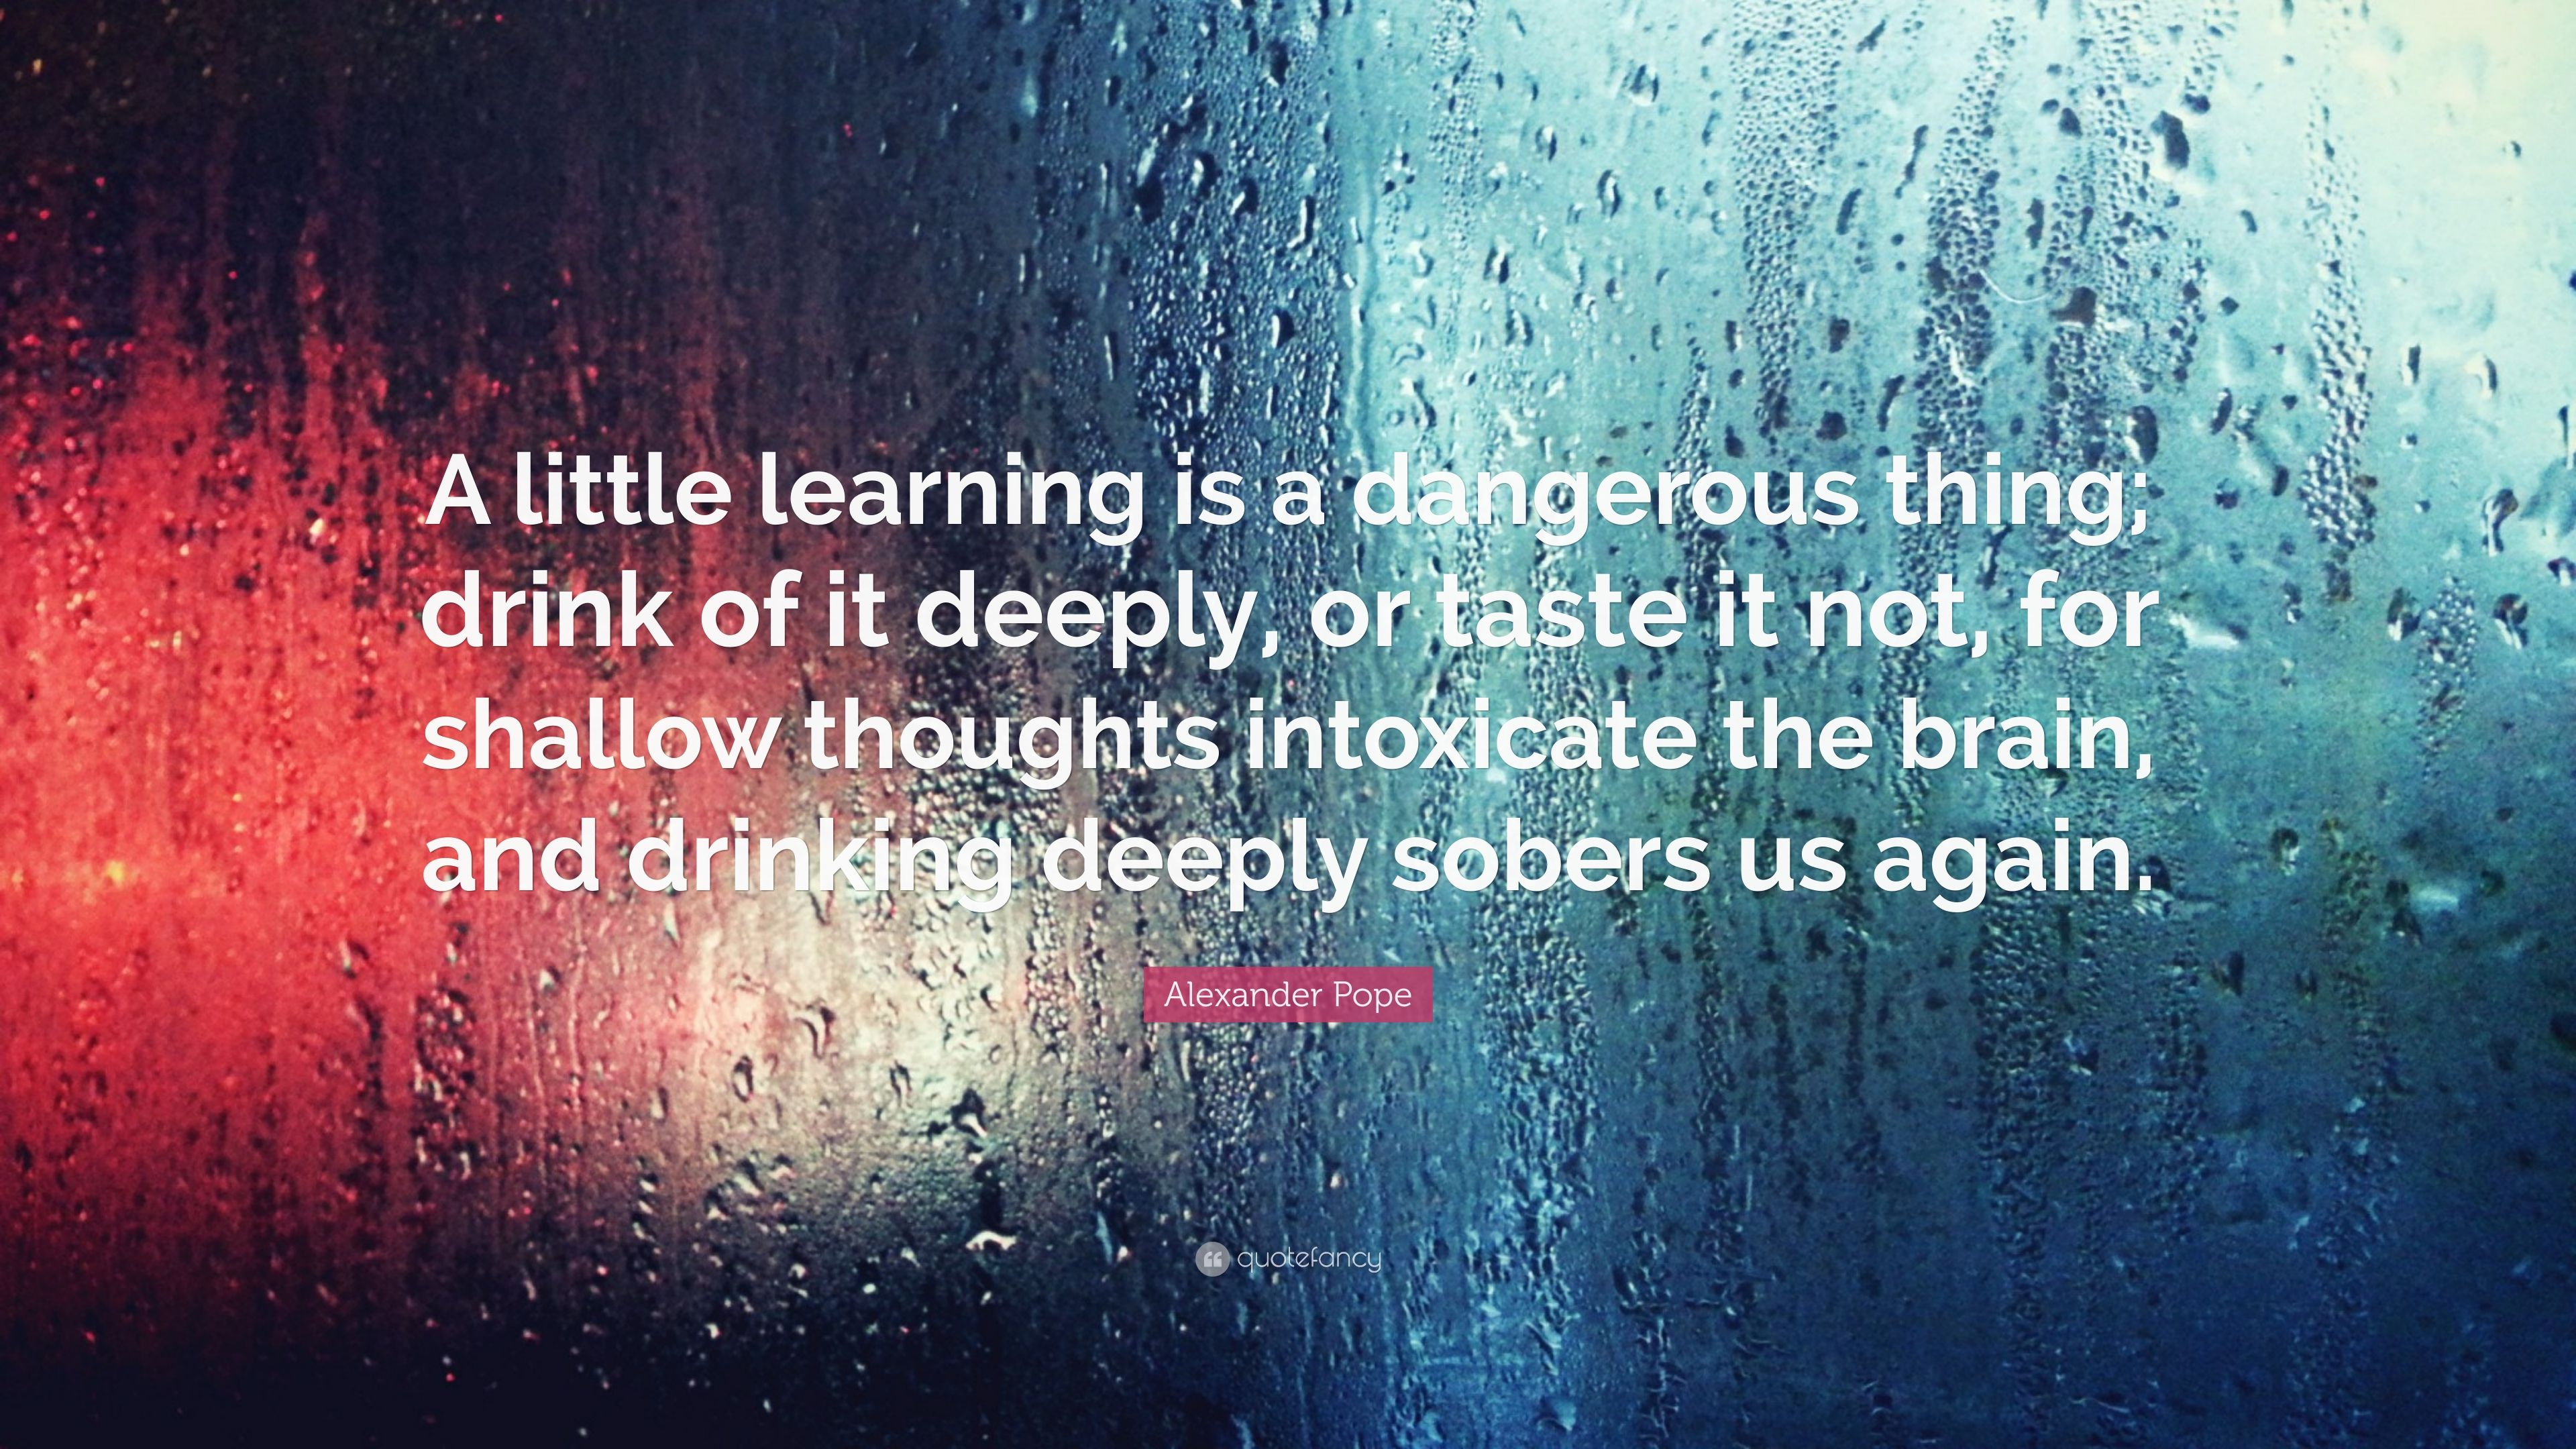 a little learning is a dangerous thing quote